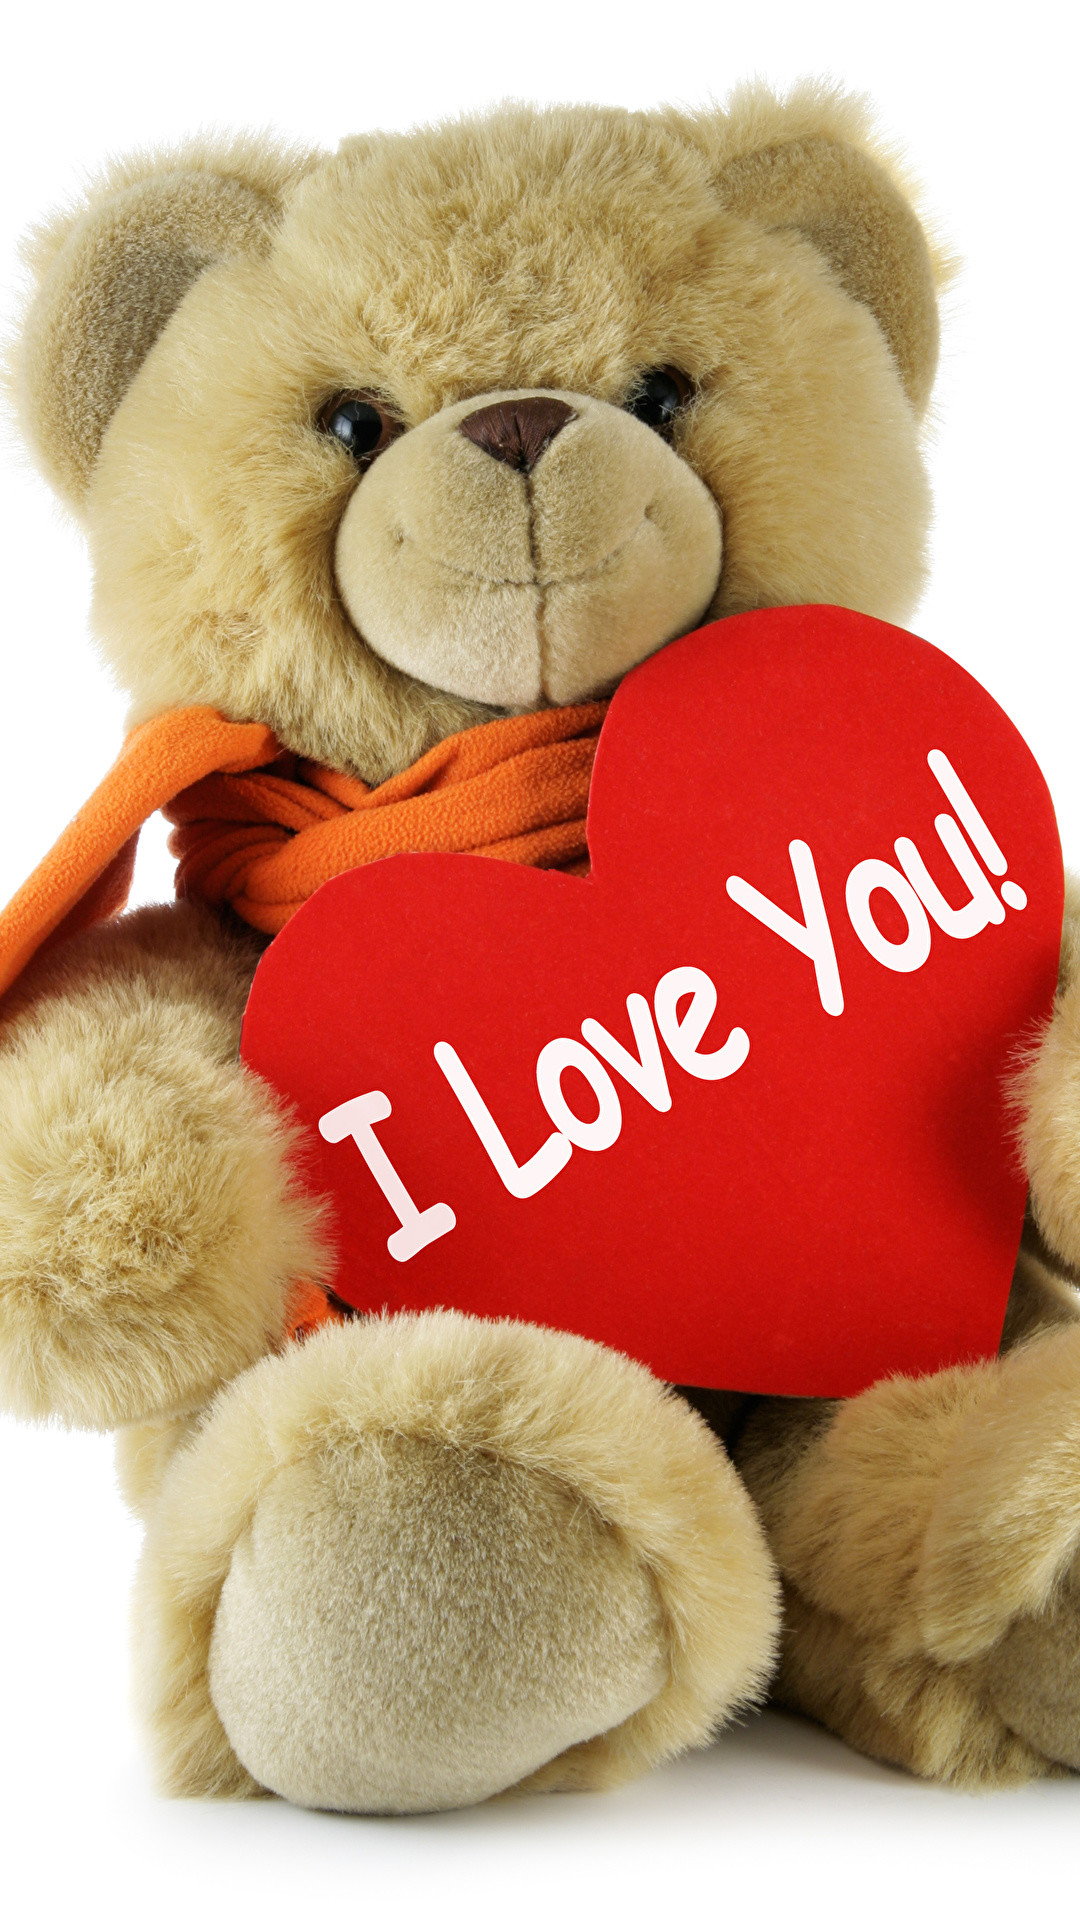 Wallpaper Valentine's Day English Heart Love Teddy bear White background  1080×1920